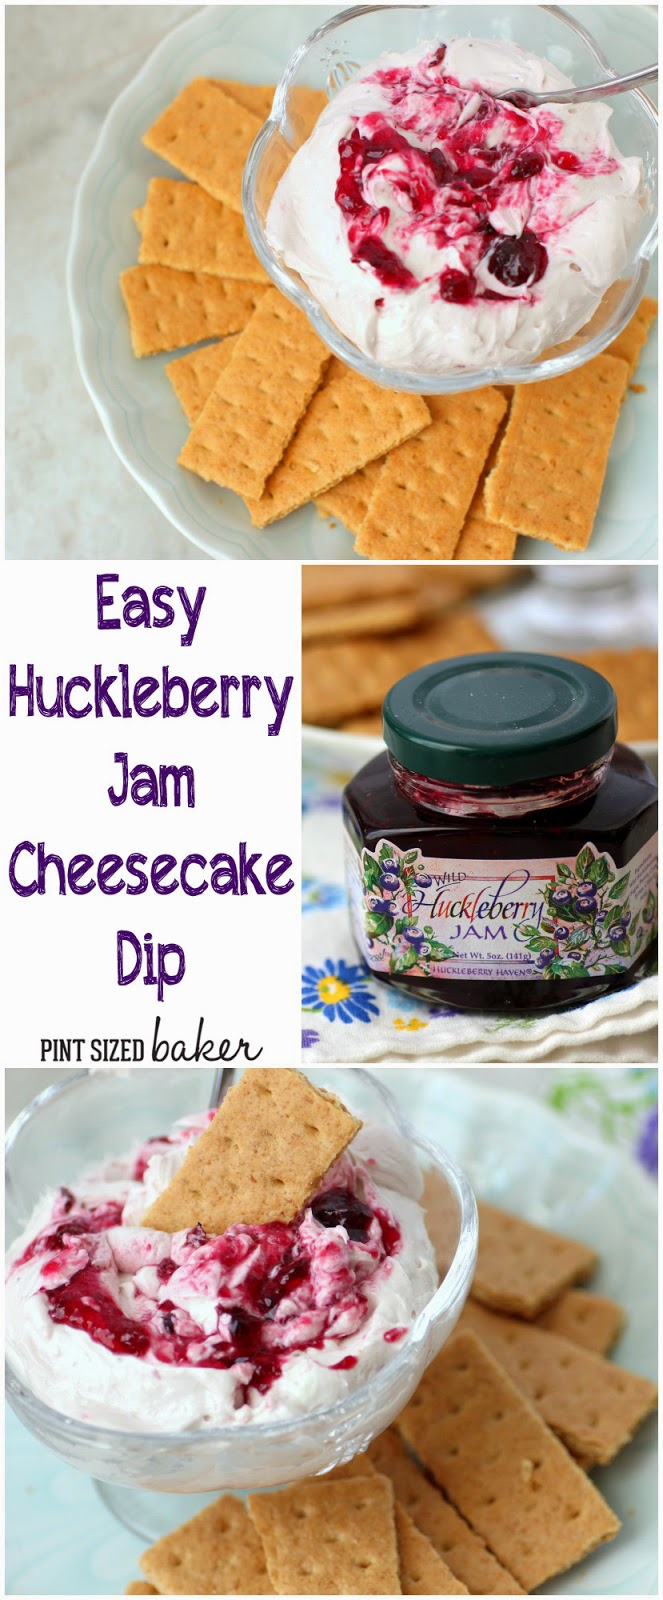 The wonderful flavor of Montana's huckleberries comes to your kitchen in this Huckleberry Jam Cheesecake Dip. It's a tasty party treat!